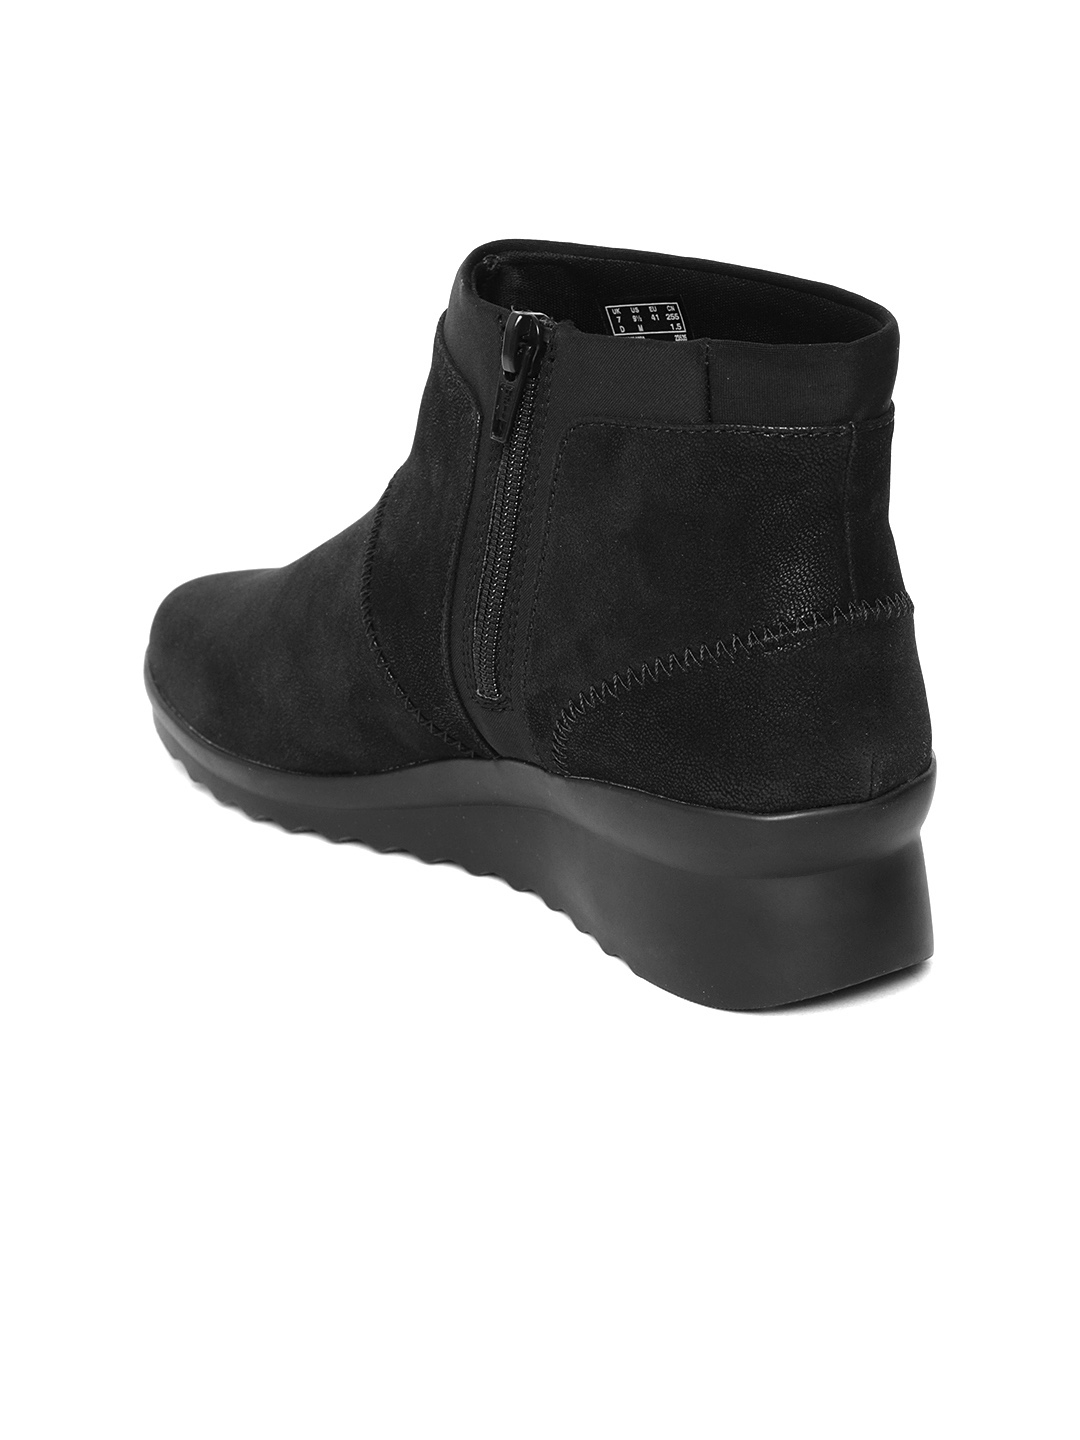 c3b144d3d Buy Clarks Women Black Solid Mid Top Flat Boots - Casual Shoes for ...